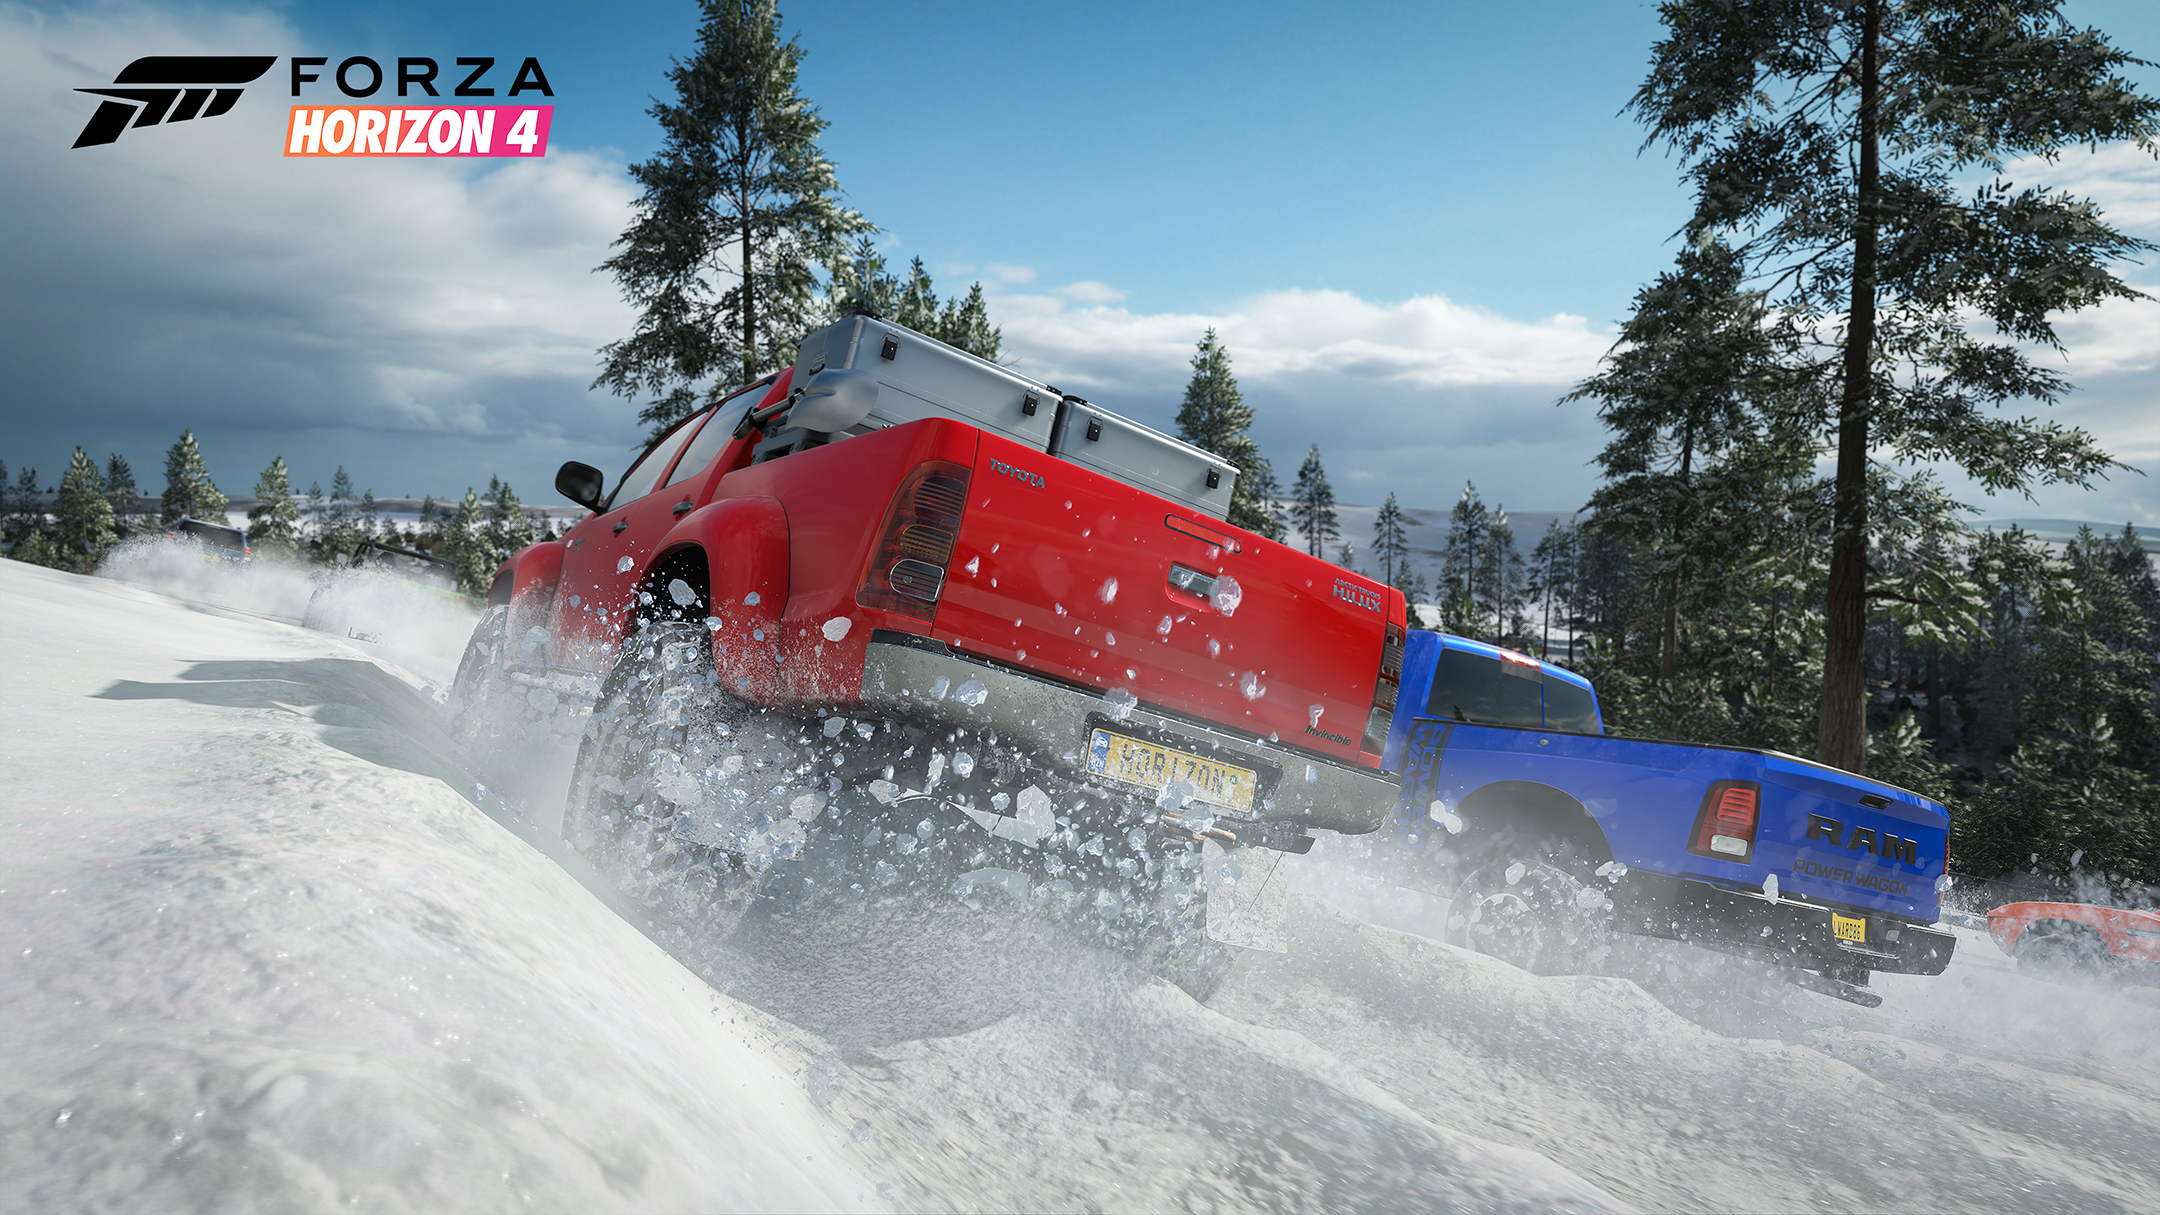 Forza Horizon 4 - 2018 - screen cars - snow trucks - RAM vs Toyota